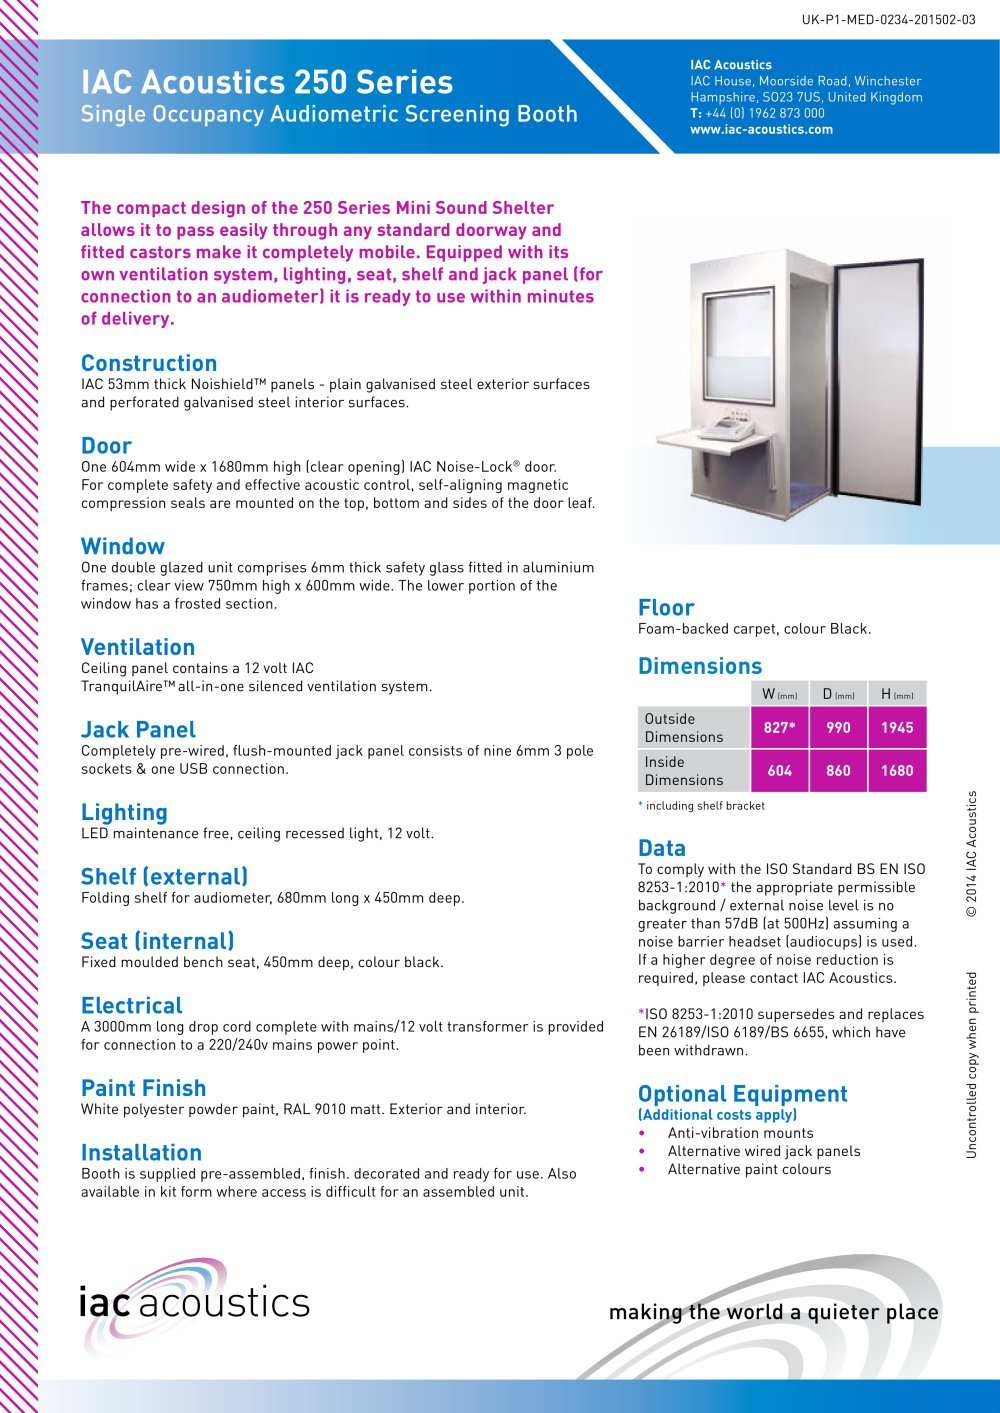 IAC Acoustics 250 Series Single Occupancy Audiometric Screening Booth - 1 / 1 Pages  sc 1 st  Catalogues Medicalexpo & IAC Acoustics 250 Series Single Occupancy Audiometric Screening ...